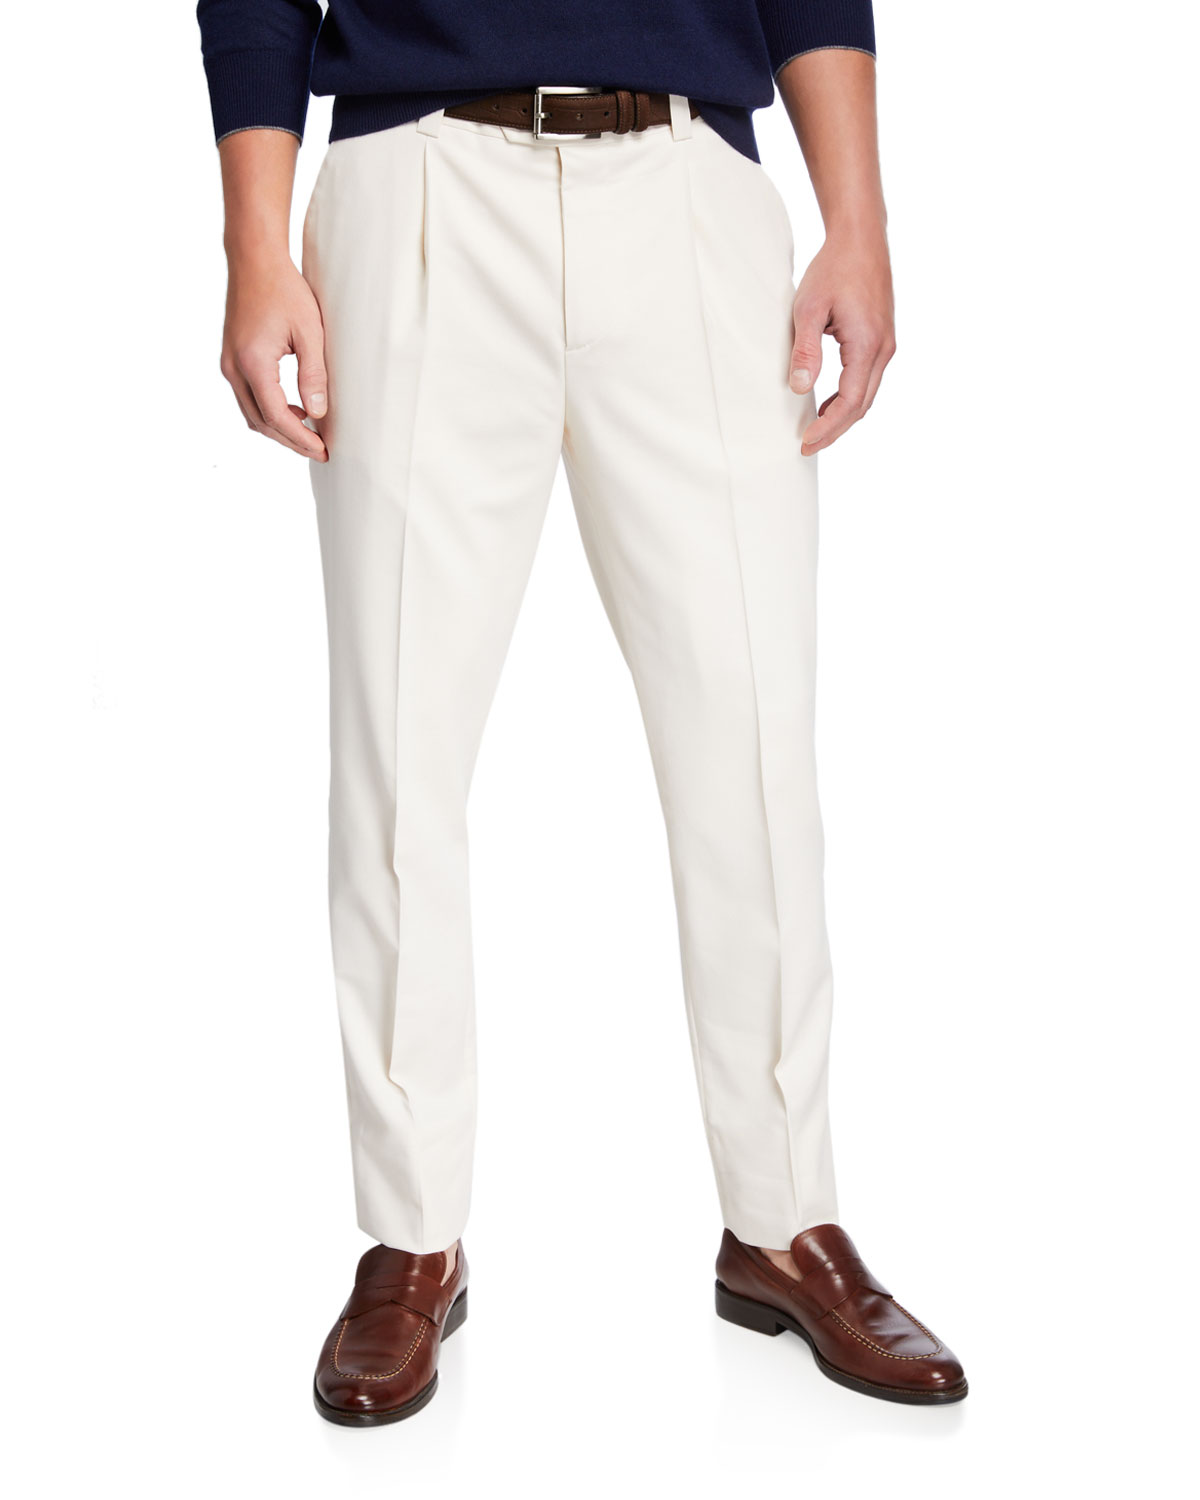 Brunello Cucinelli Cottons MEN'S PLEATED WOOL-COTTON TWILL LEISURE FIT TROUSERS